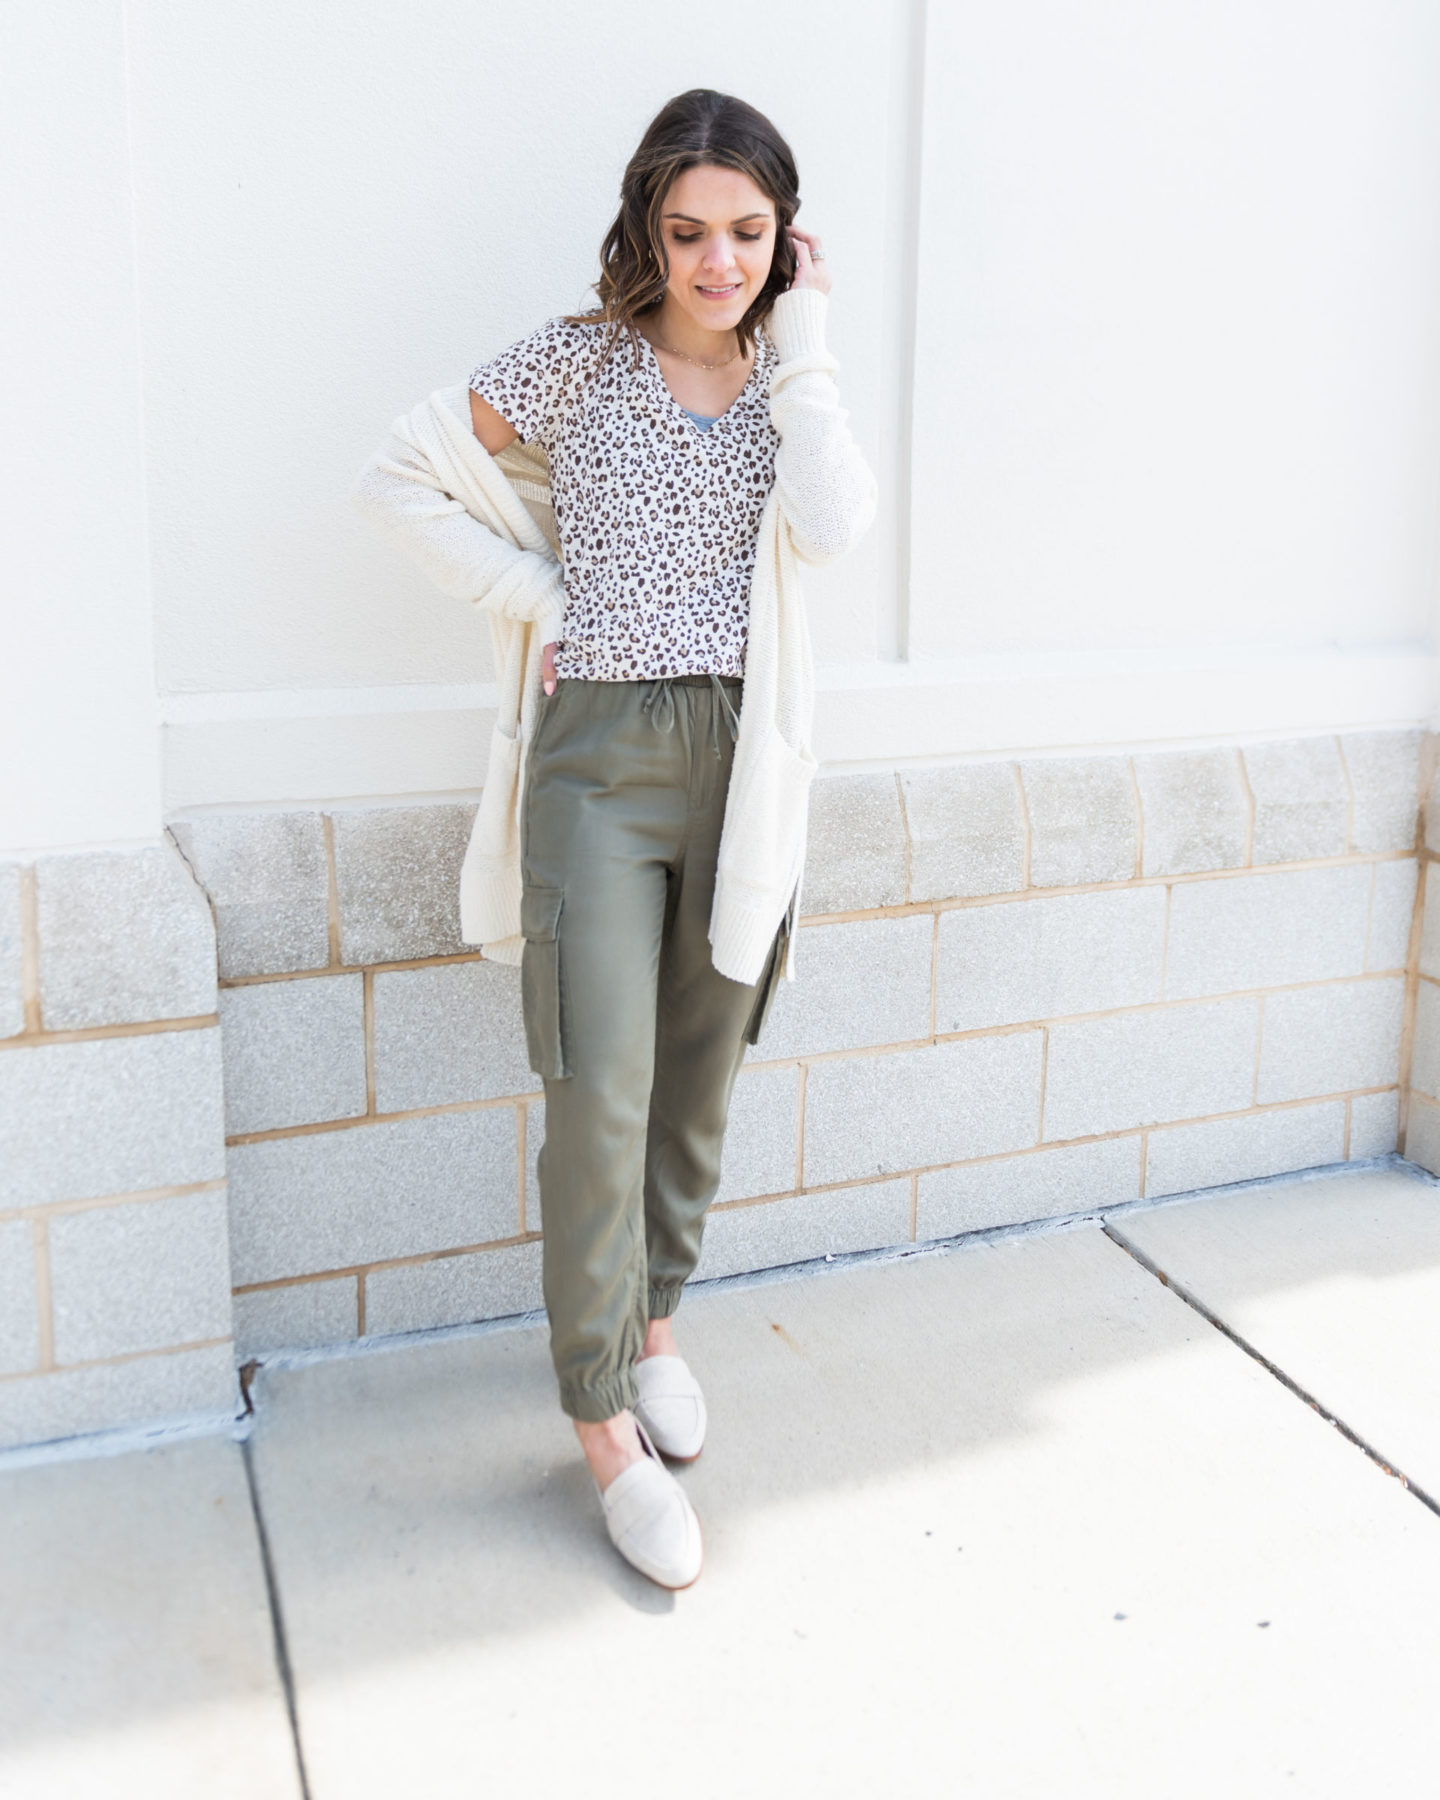 the Origin of titled fashion | 7 ways to style joggers